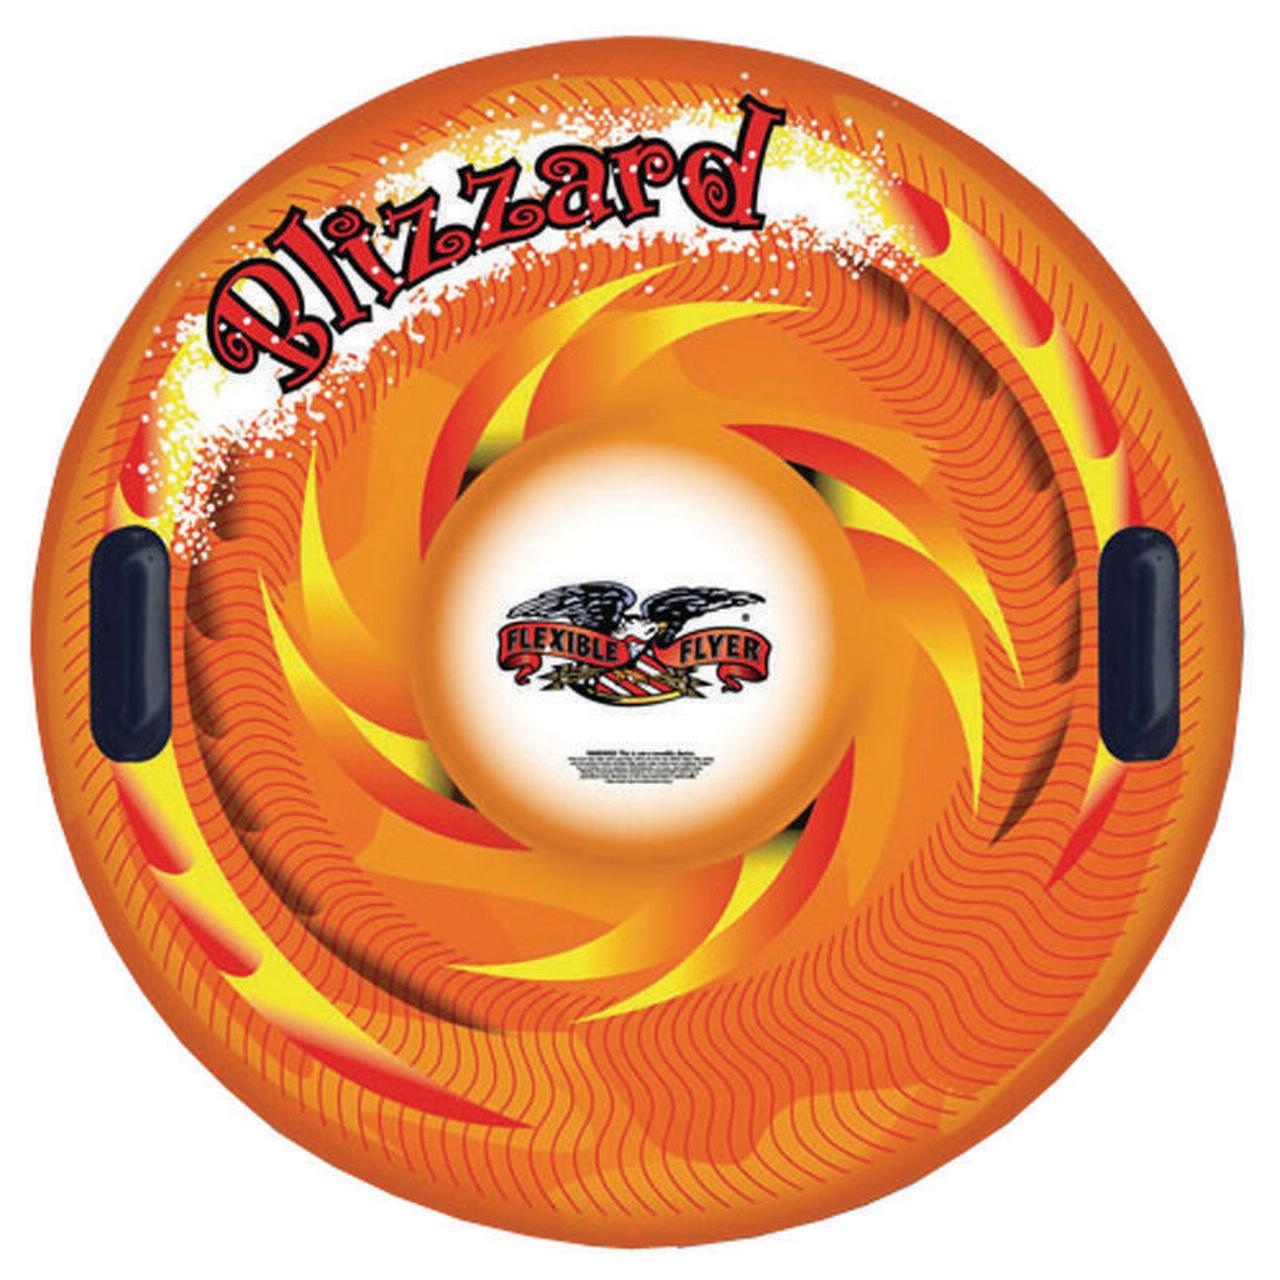 "Paricon 39"" Blizzard"